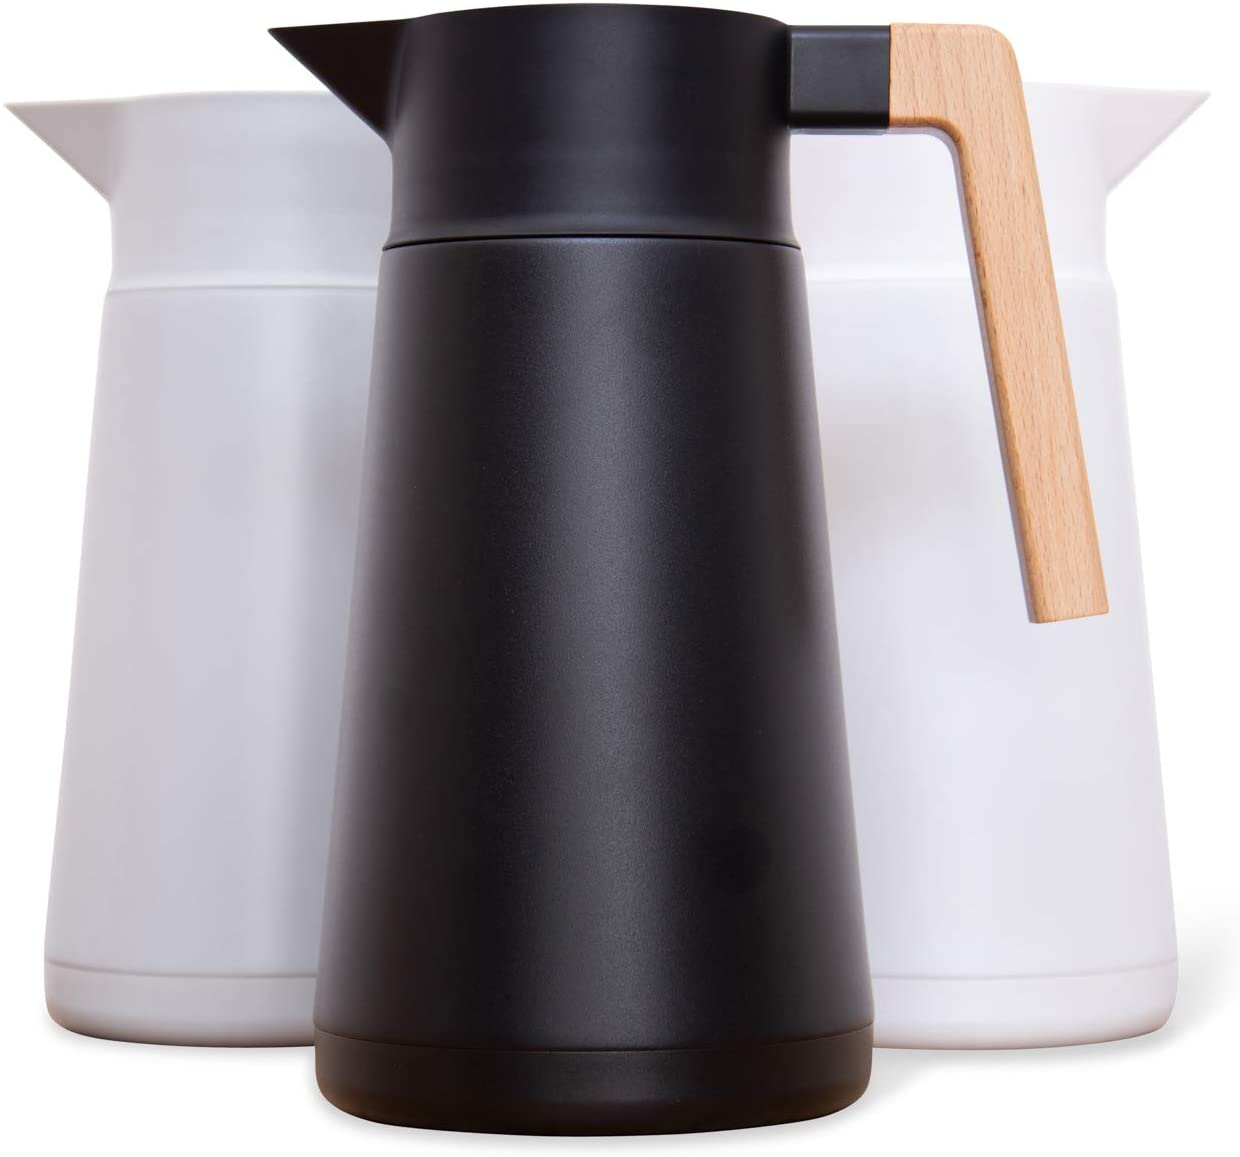 Large Thermal Coffee Carafe - Stainless Steel, Double Walled Thermal Pots For Coffee and Teas from Amazon